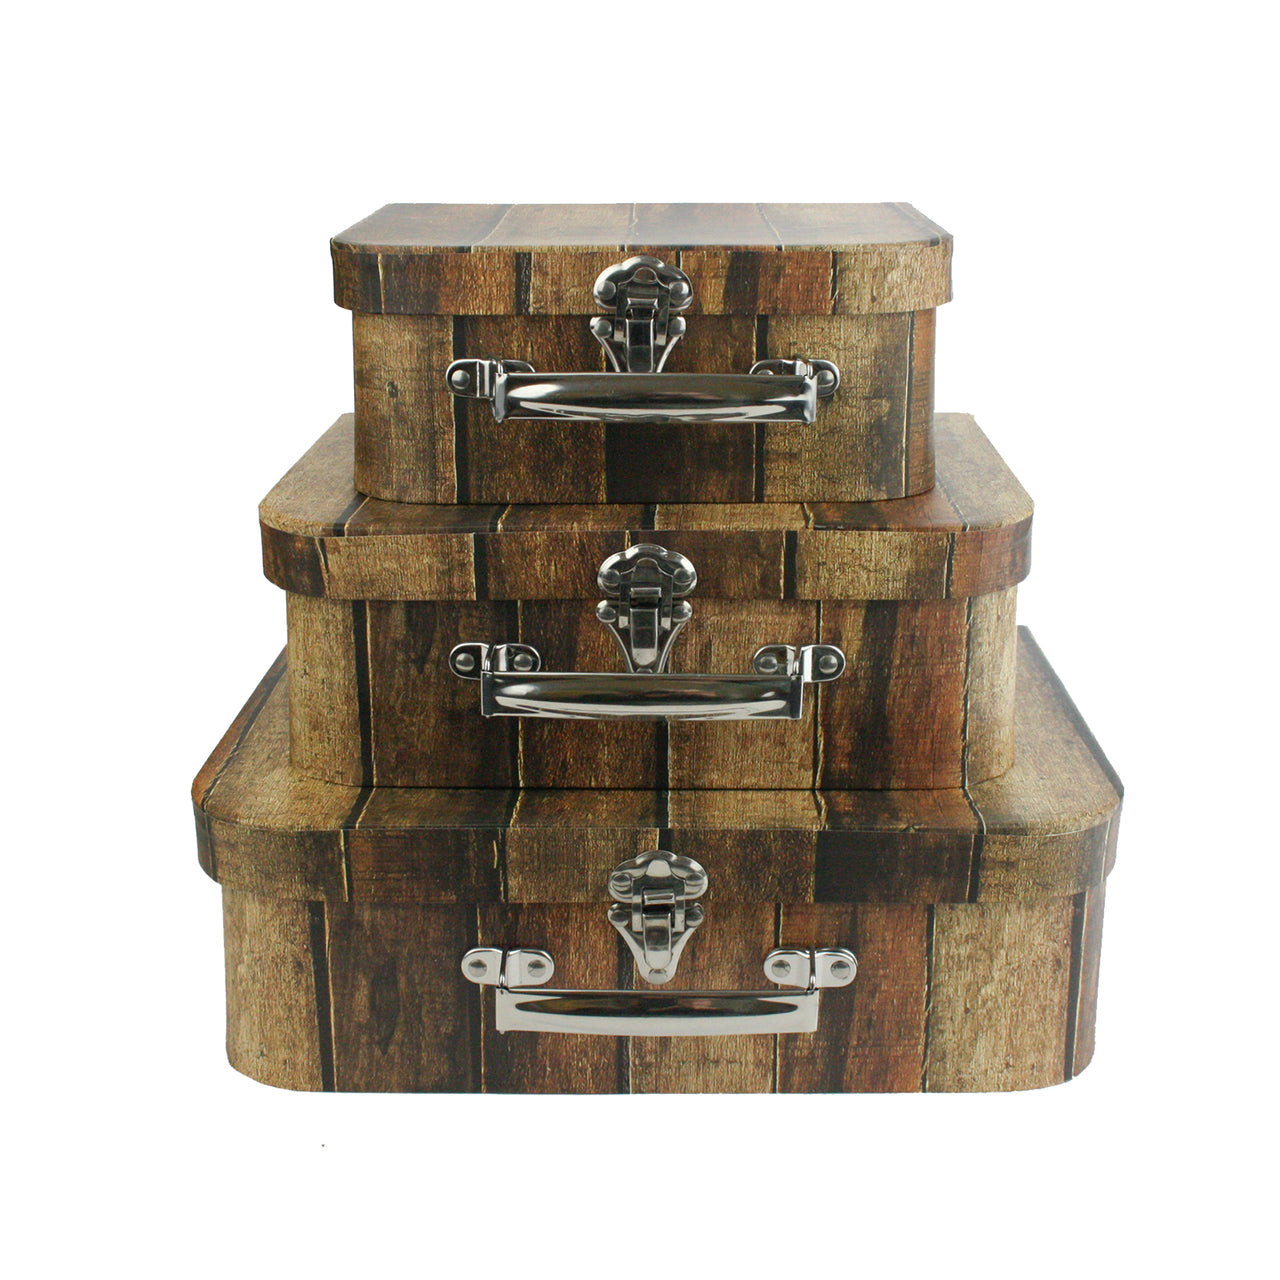 Set of 3 Suitcase Gift Box - Brown Wooden Effect